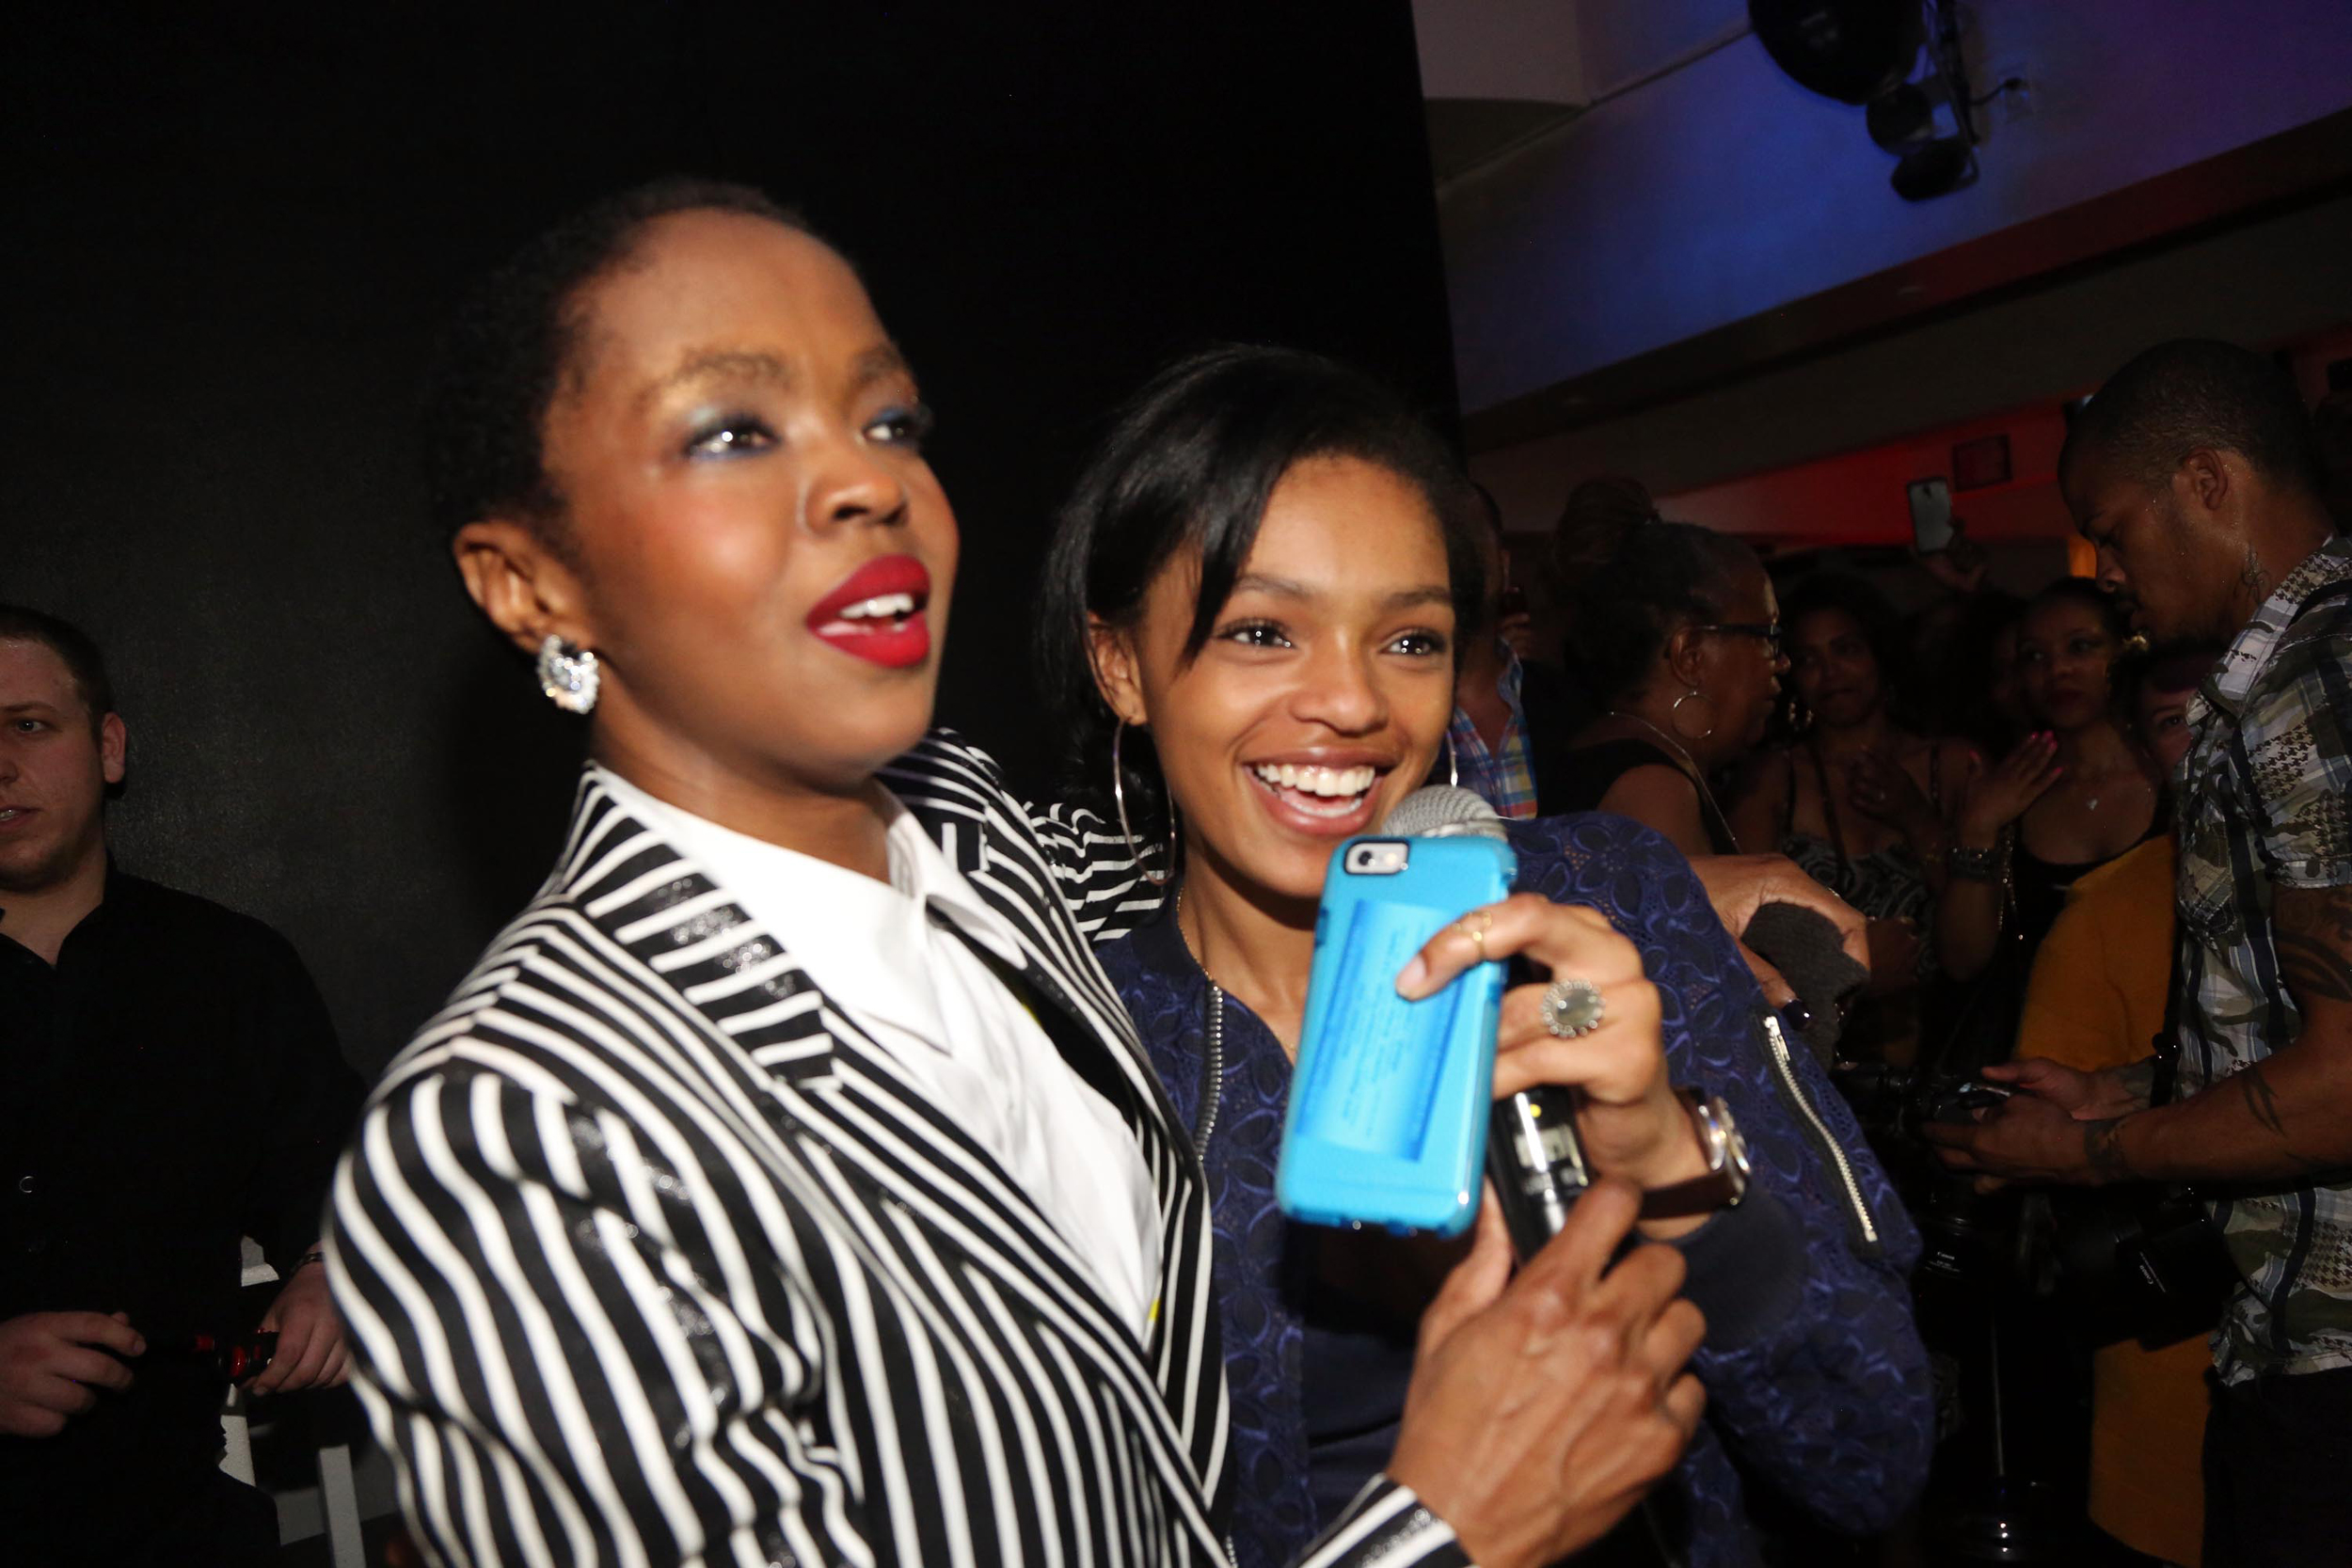 Selah Marley, granddaughter of Bob Marley, is driven to succeed now